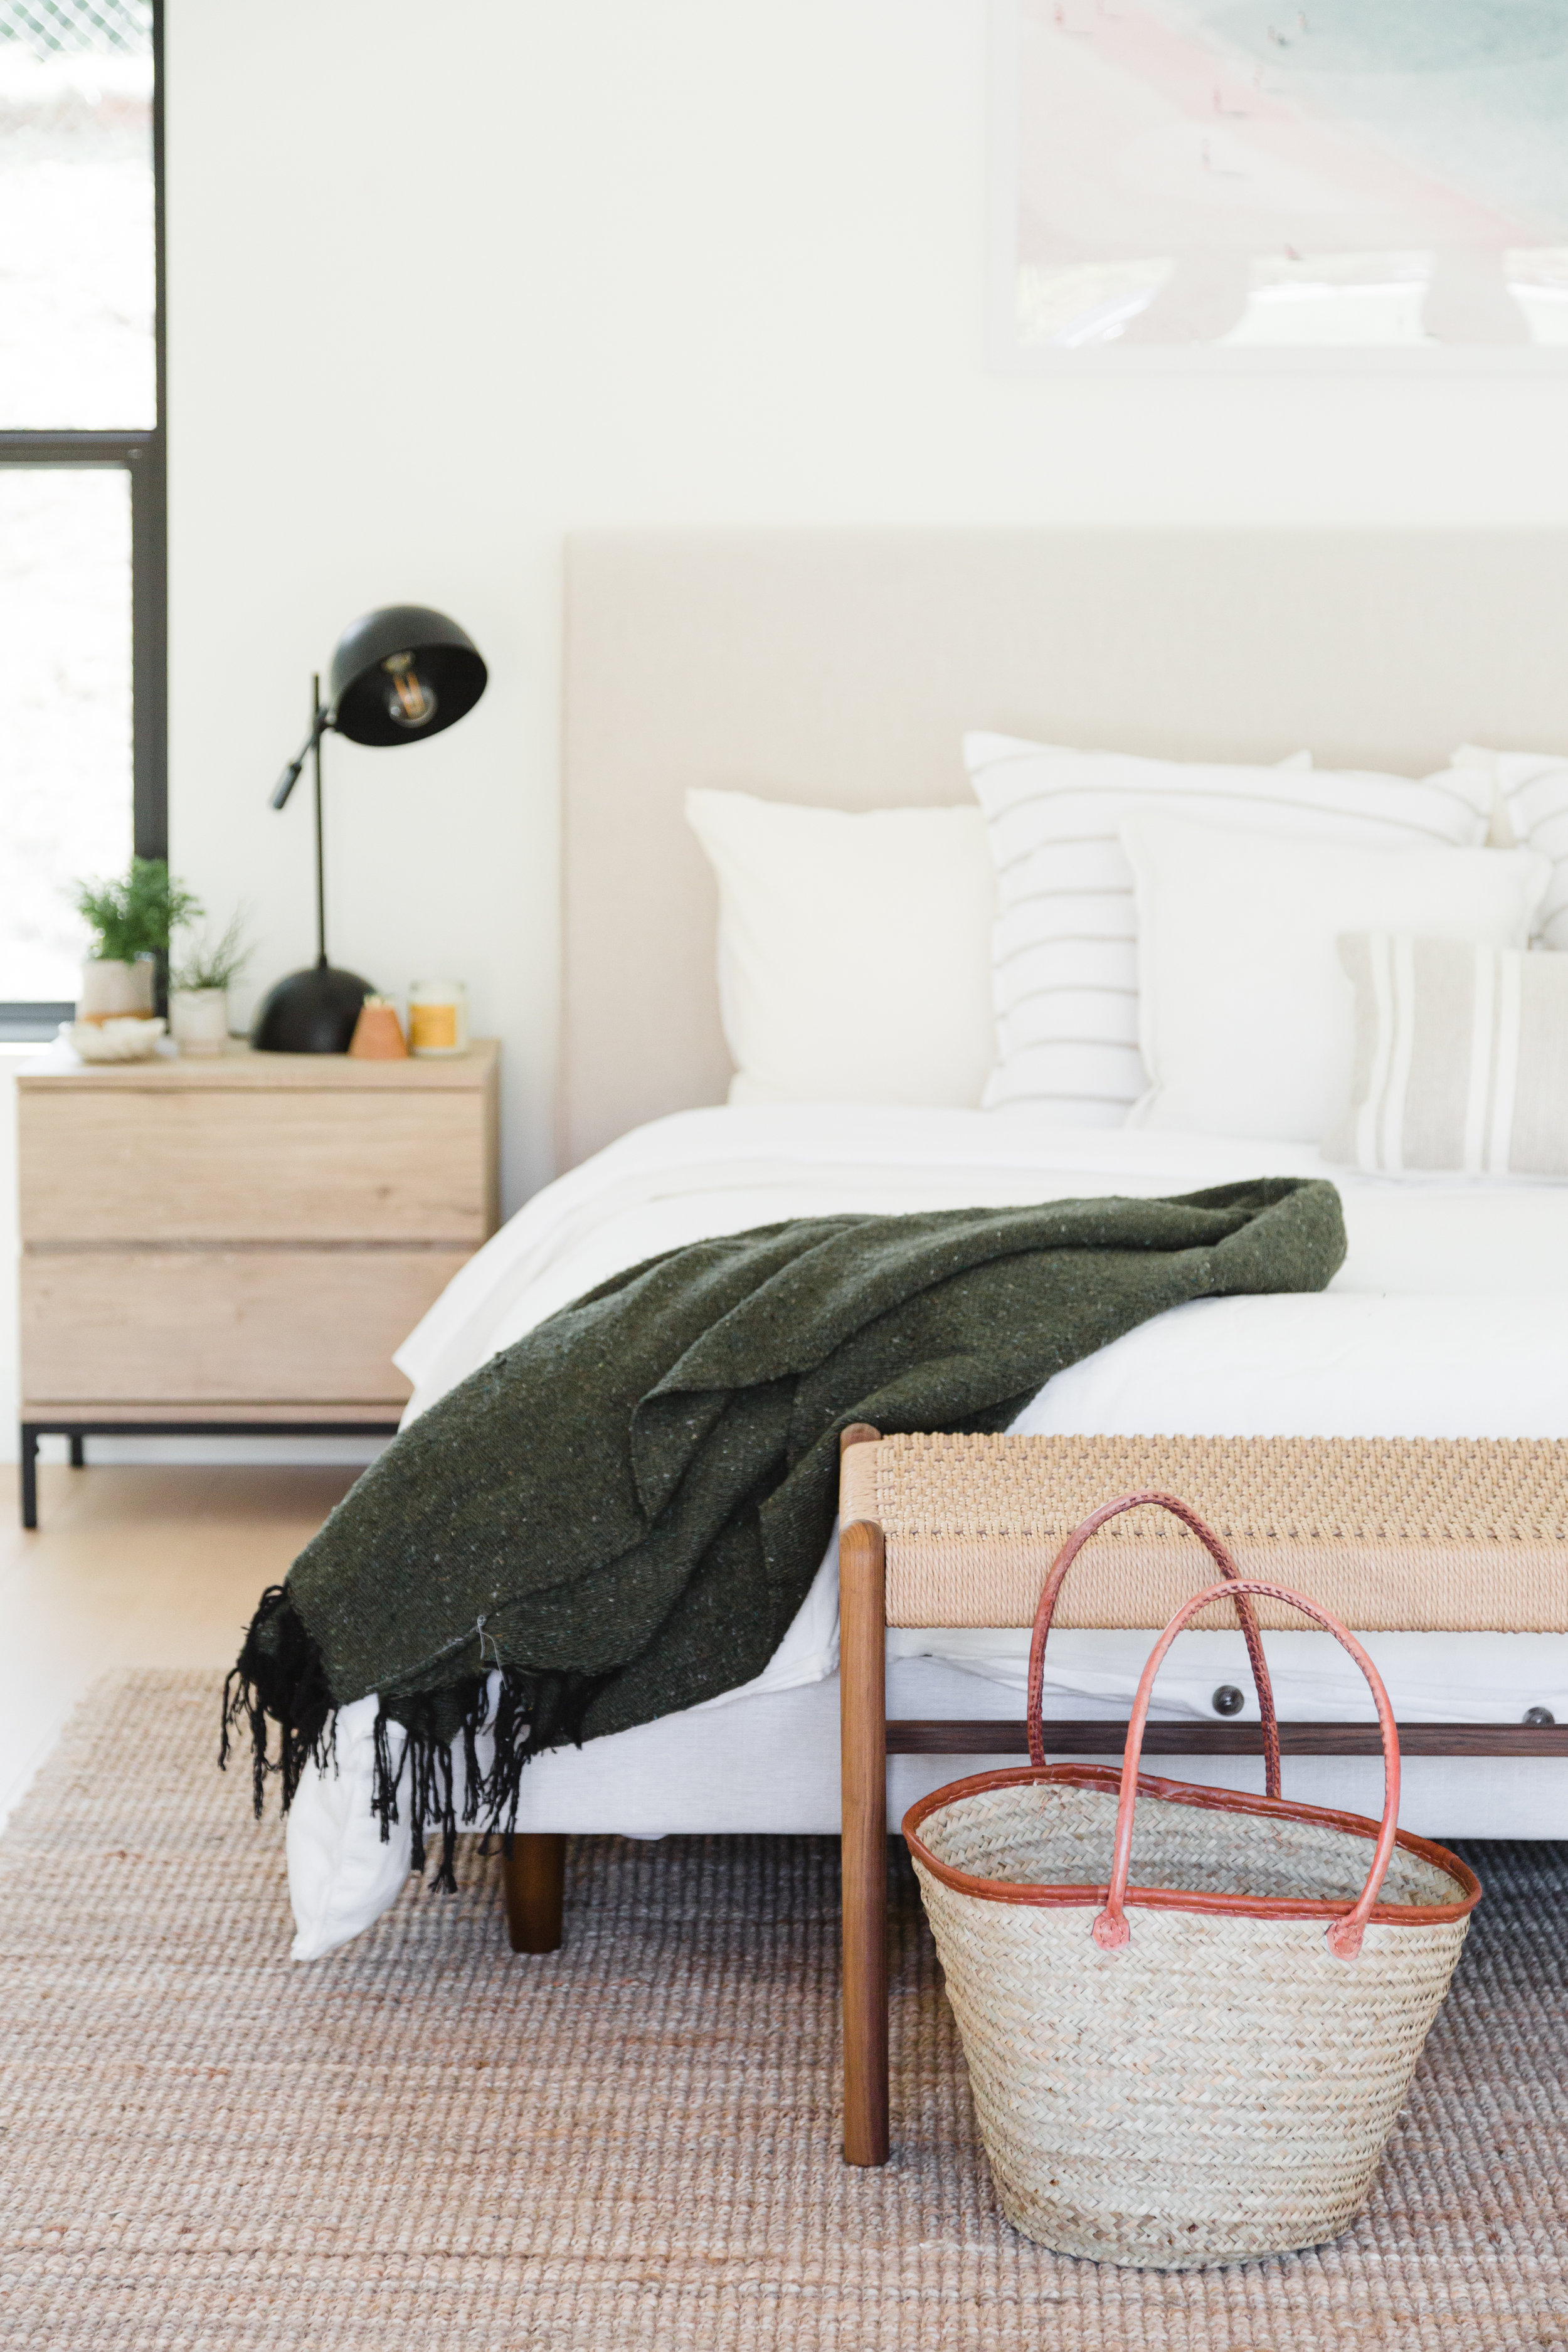 5. Update Your Bed - New sheets, new duvet, add a fun new throw and you've got yourself a fresh new serene bedtime setting.